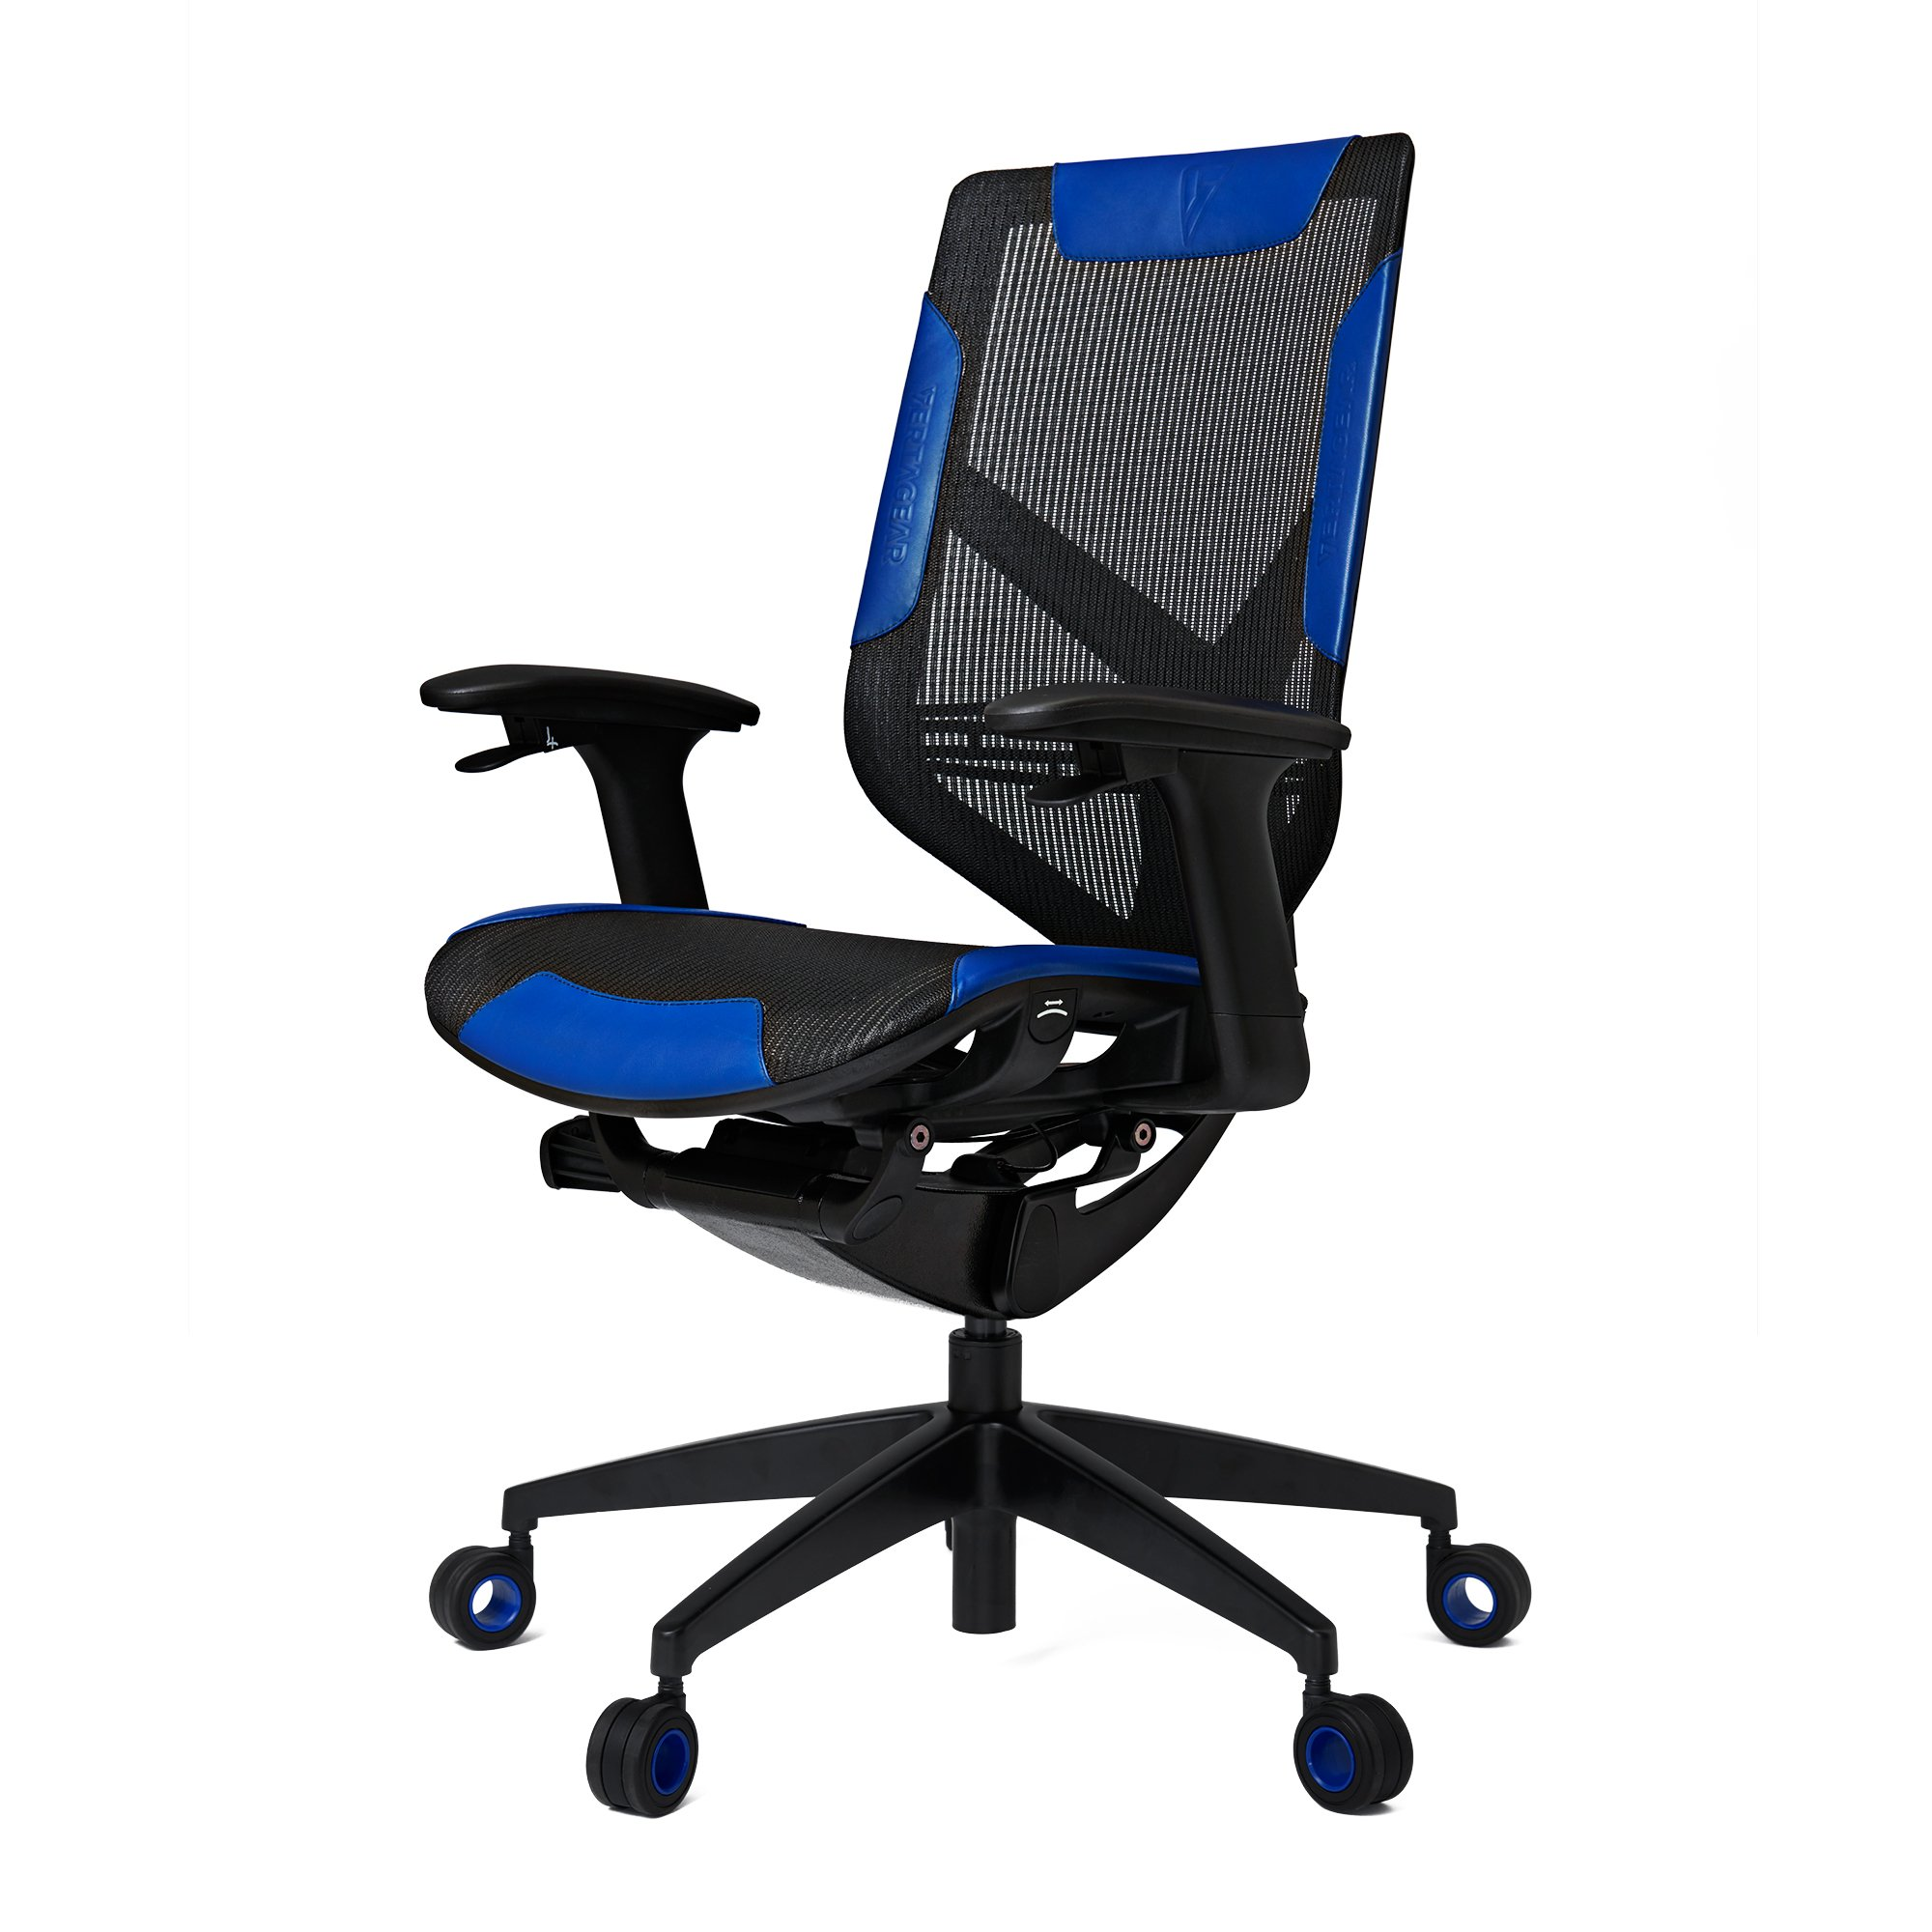 Vertagear Triigger 275 Gaming Chair, Large, Blue by VERTAGEAR